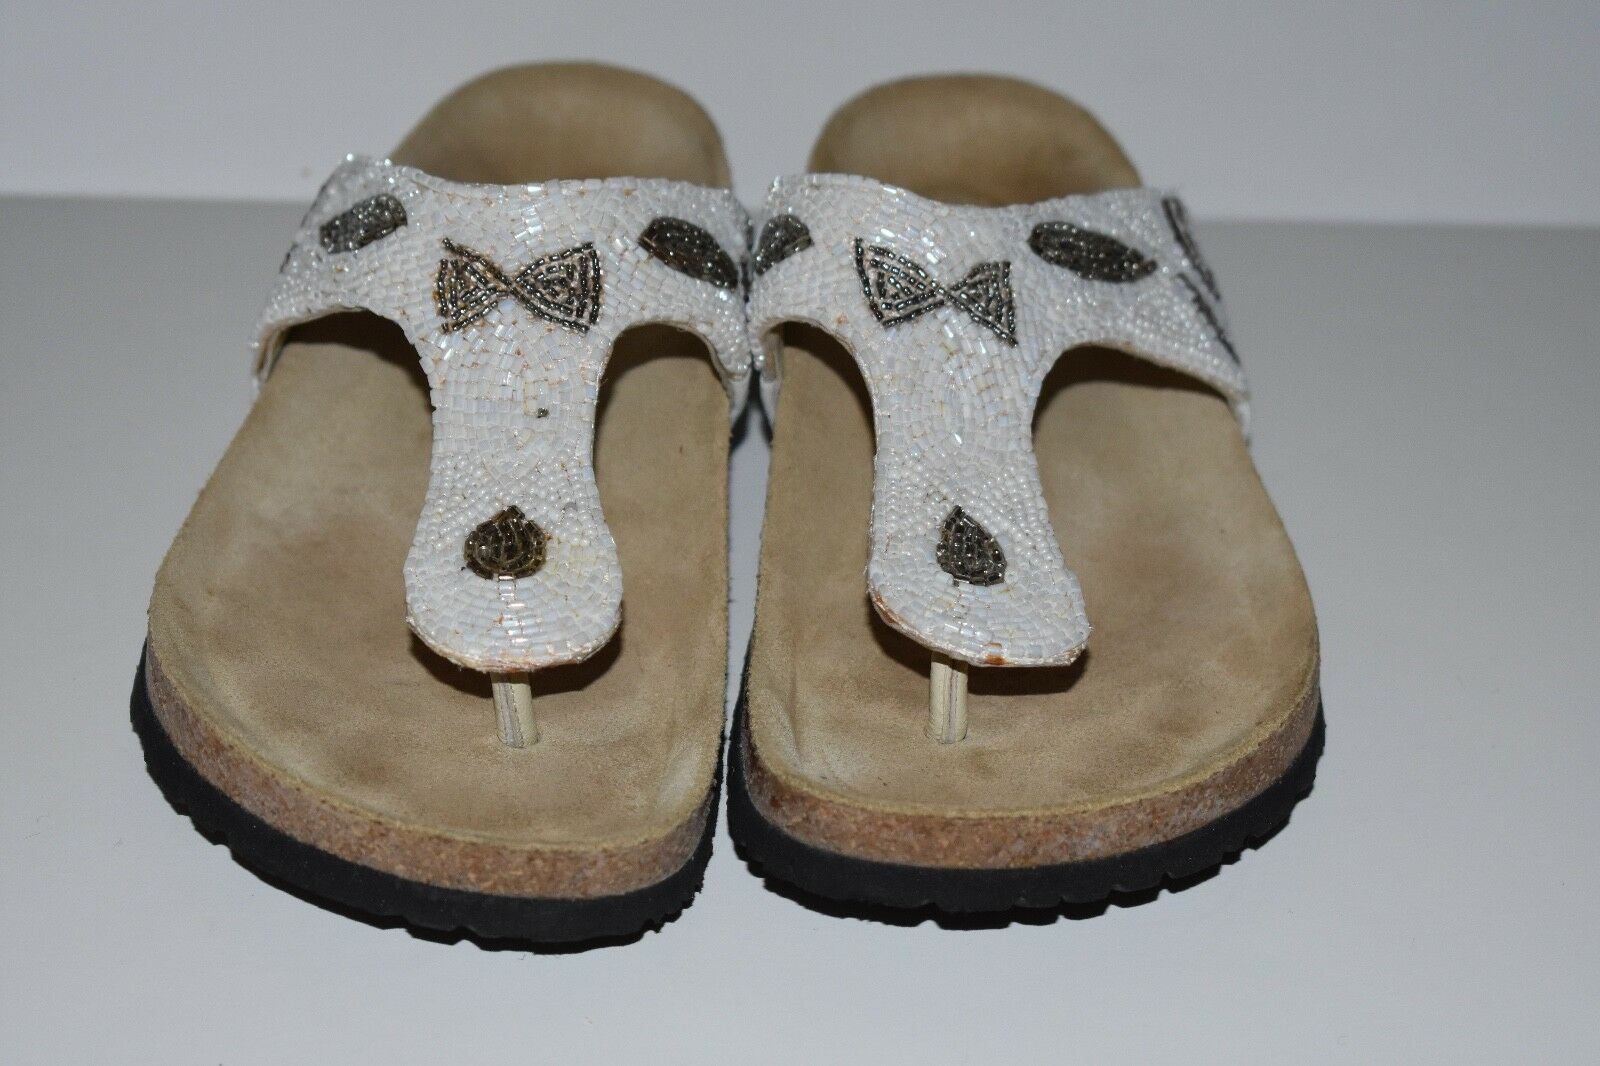 Mephisto Thong Comfort Thong Mephisto Sandale Footbed 37 Sequinced e78197